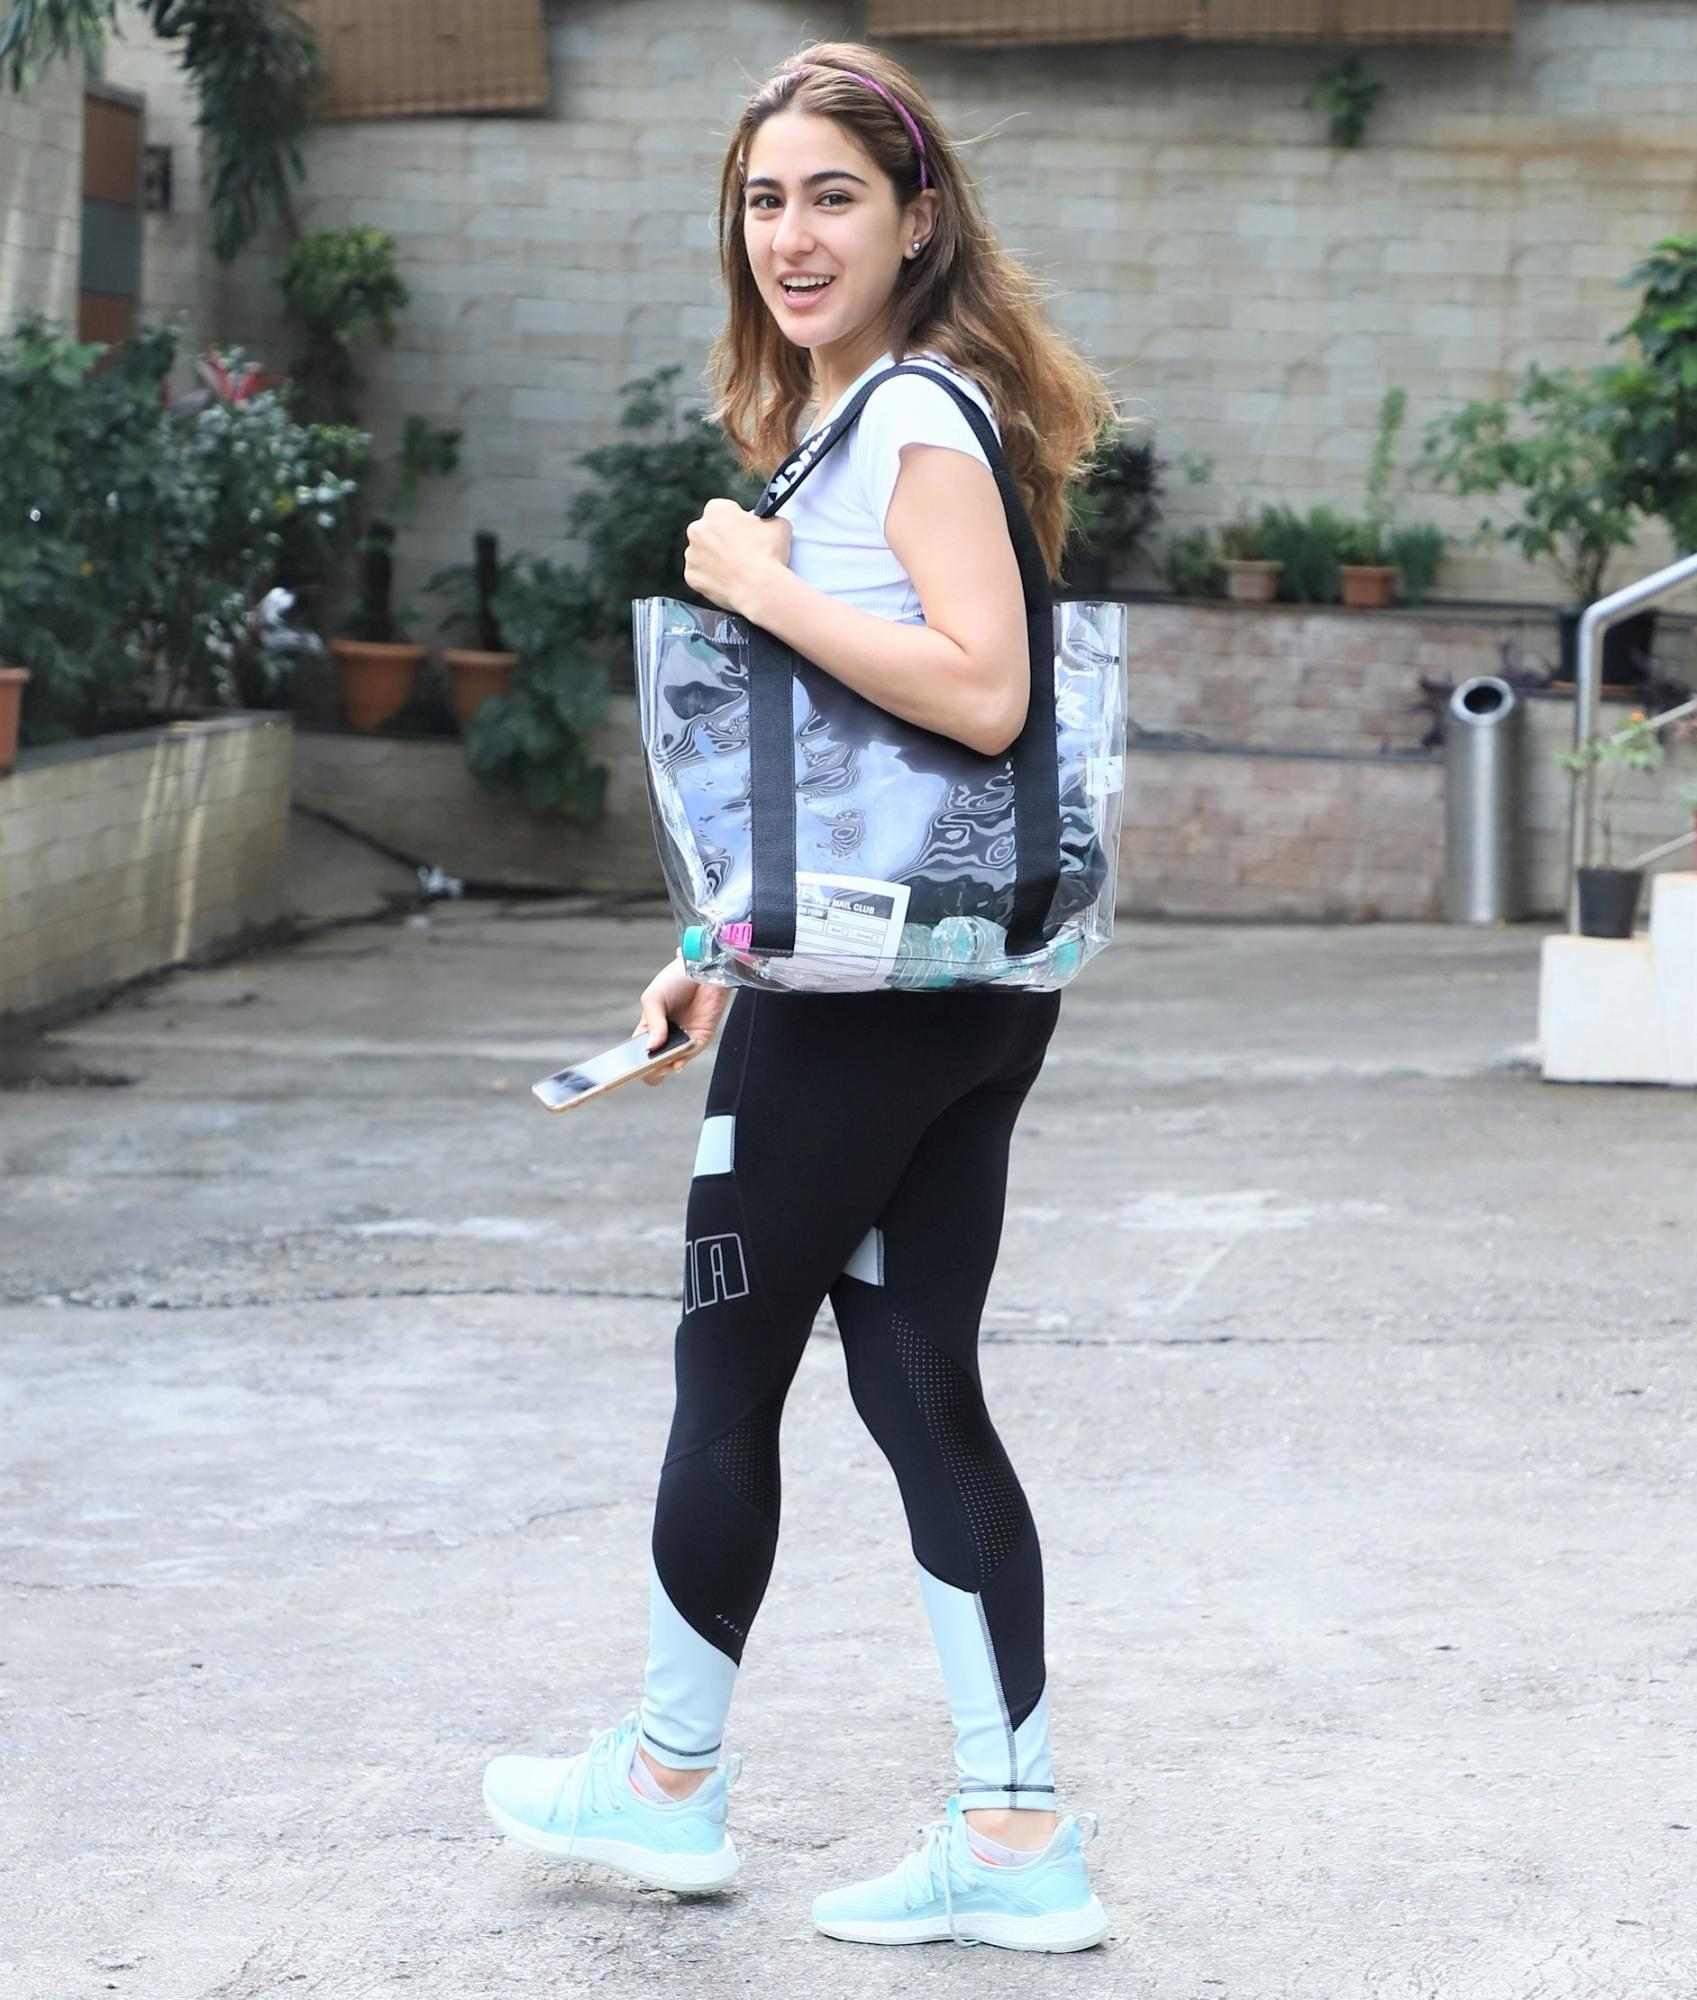 Sara Ali Khan Shares 5 Important Tips for Healthy and Glowing Skin. Find Out What is Most Important to Her!